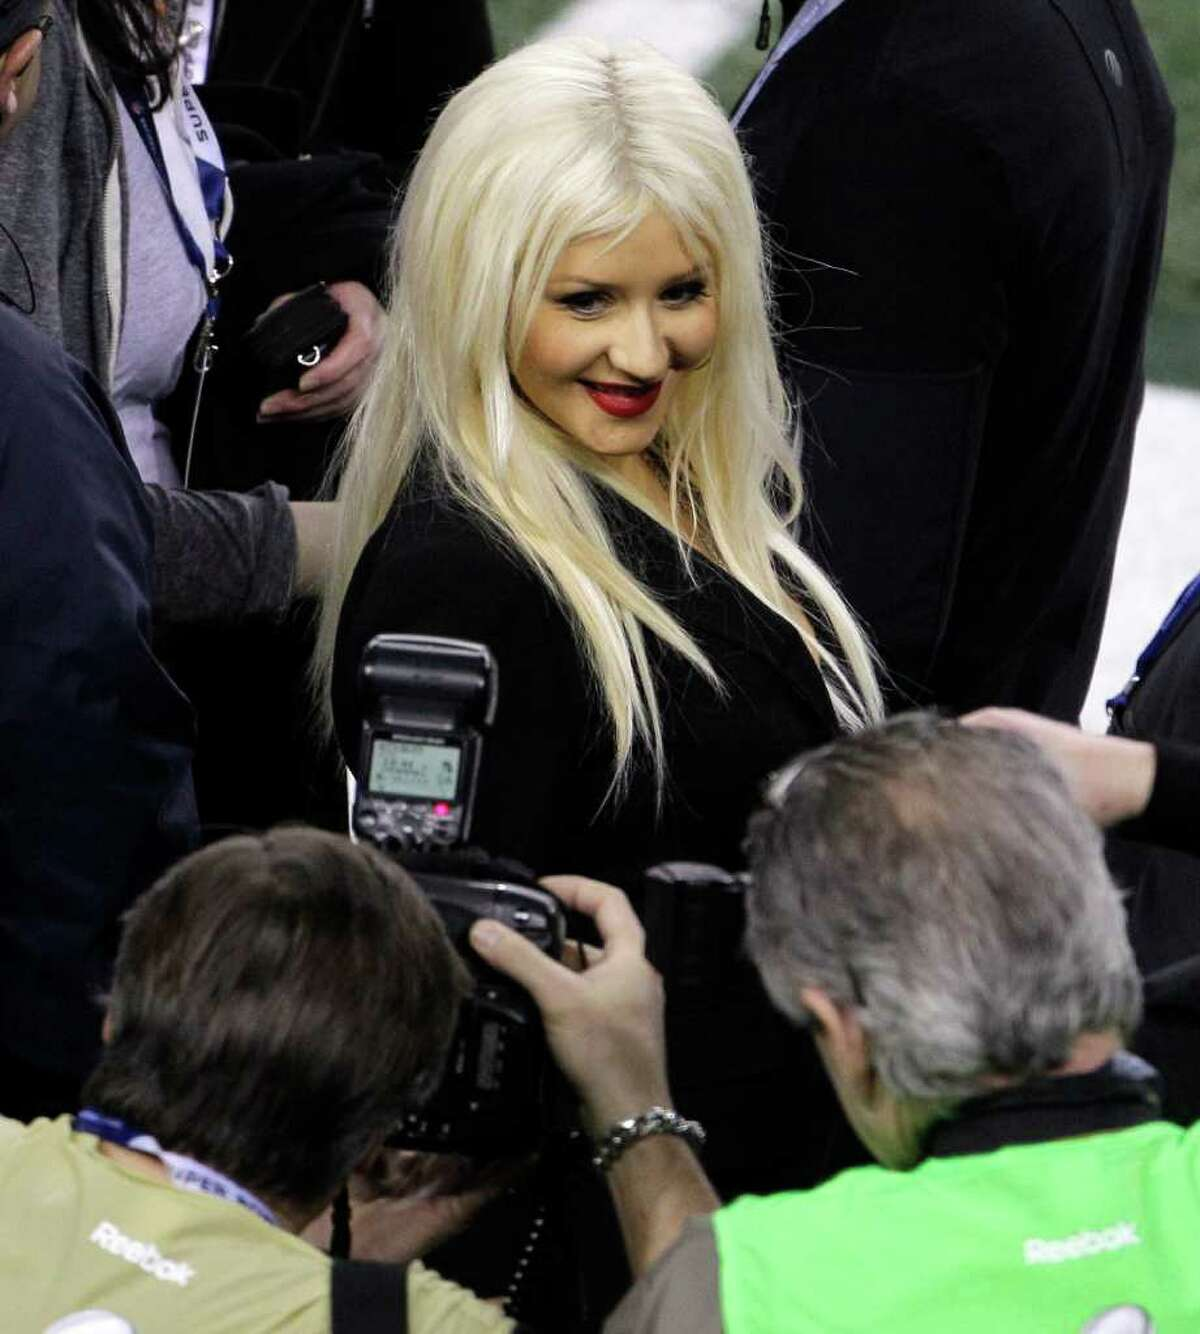 Singer Christina Aguilera poses for photographers before the start of the NFL Super Bowl XLV football game Sunday, Feb. 6, 2011, in Arlington, Texas.